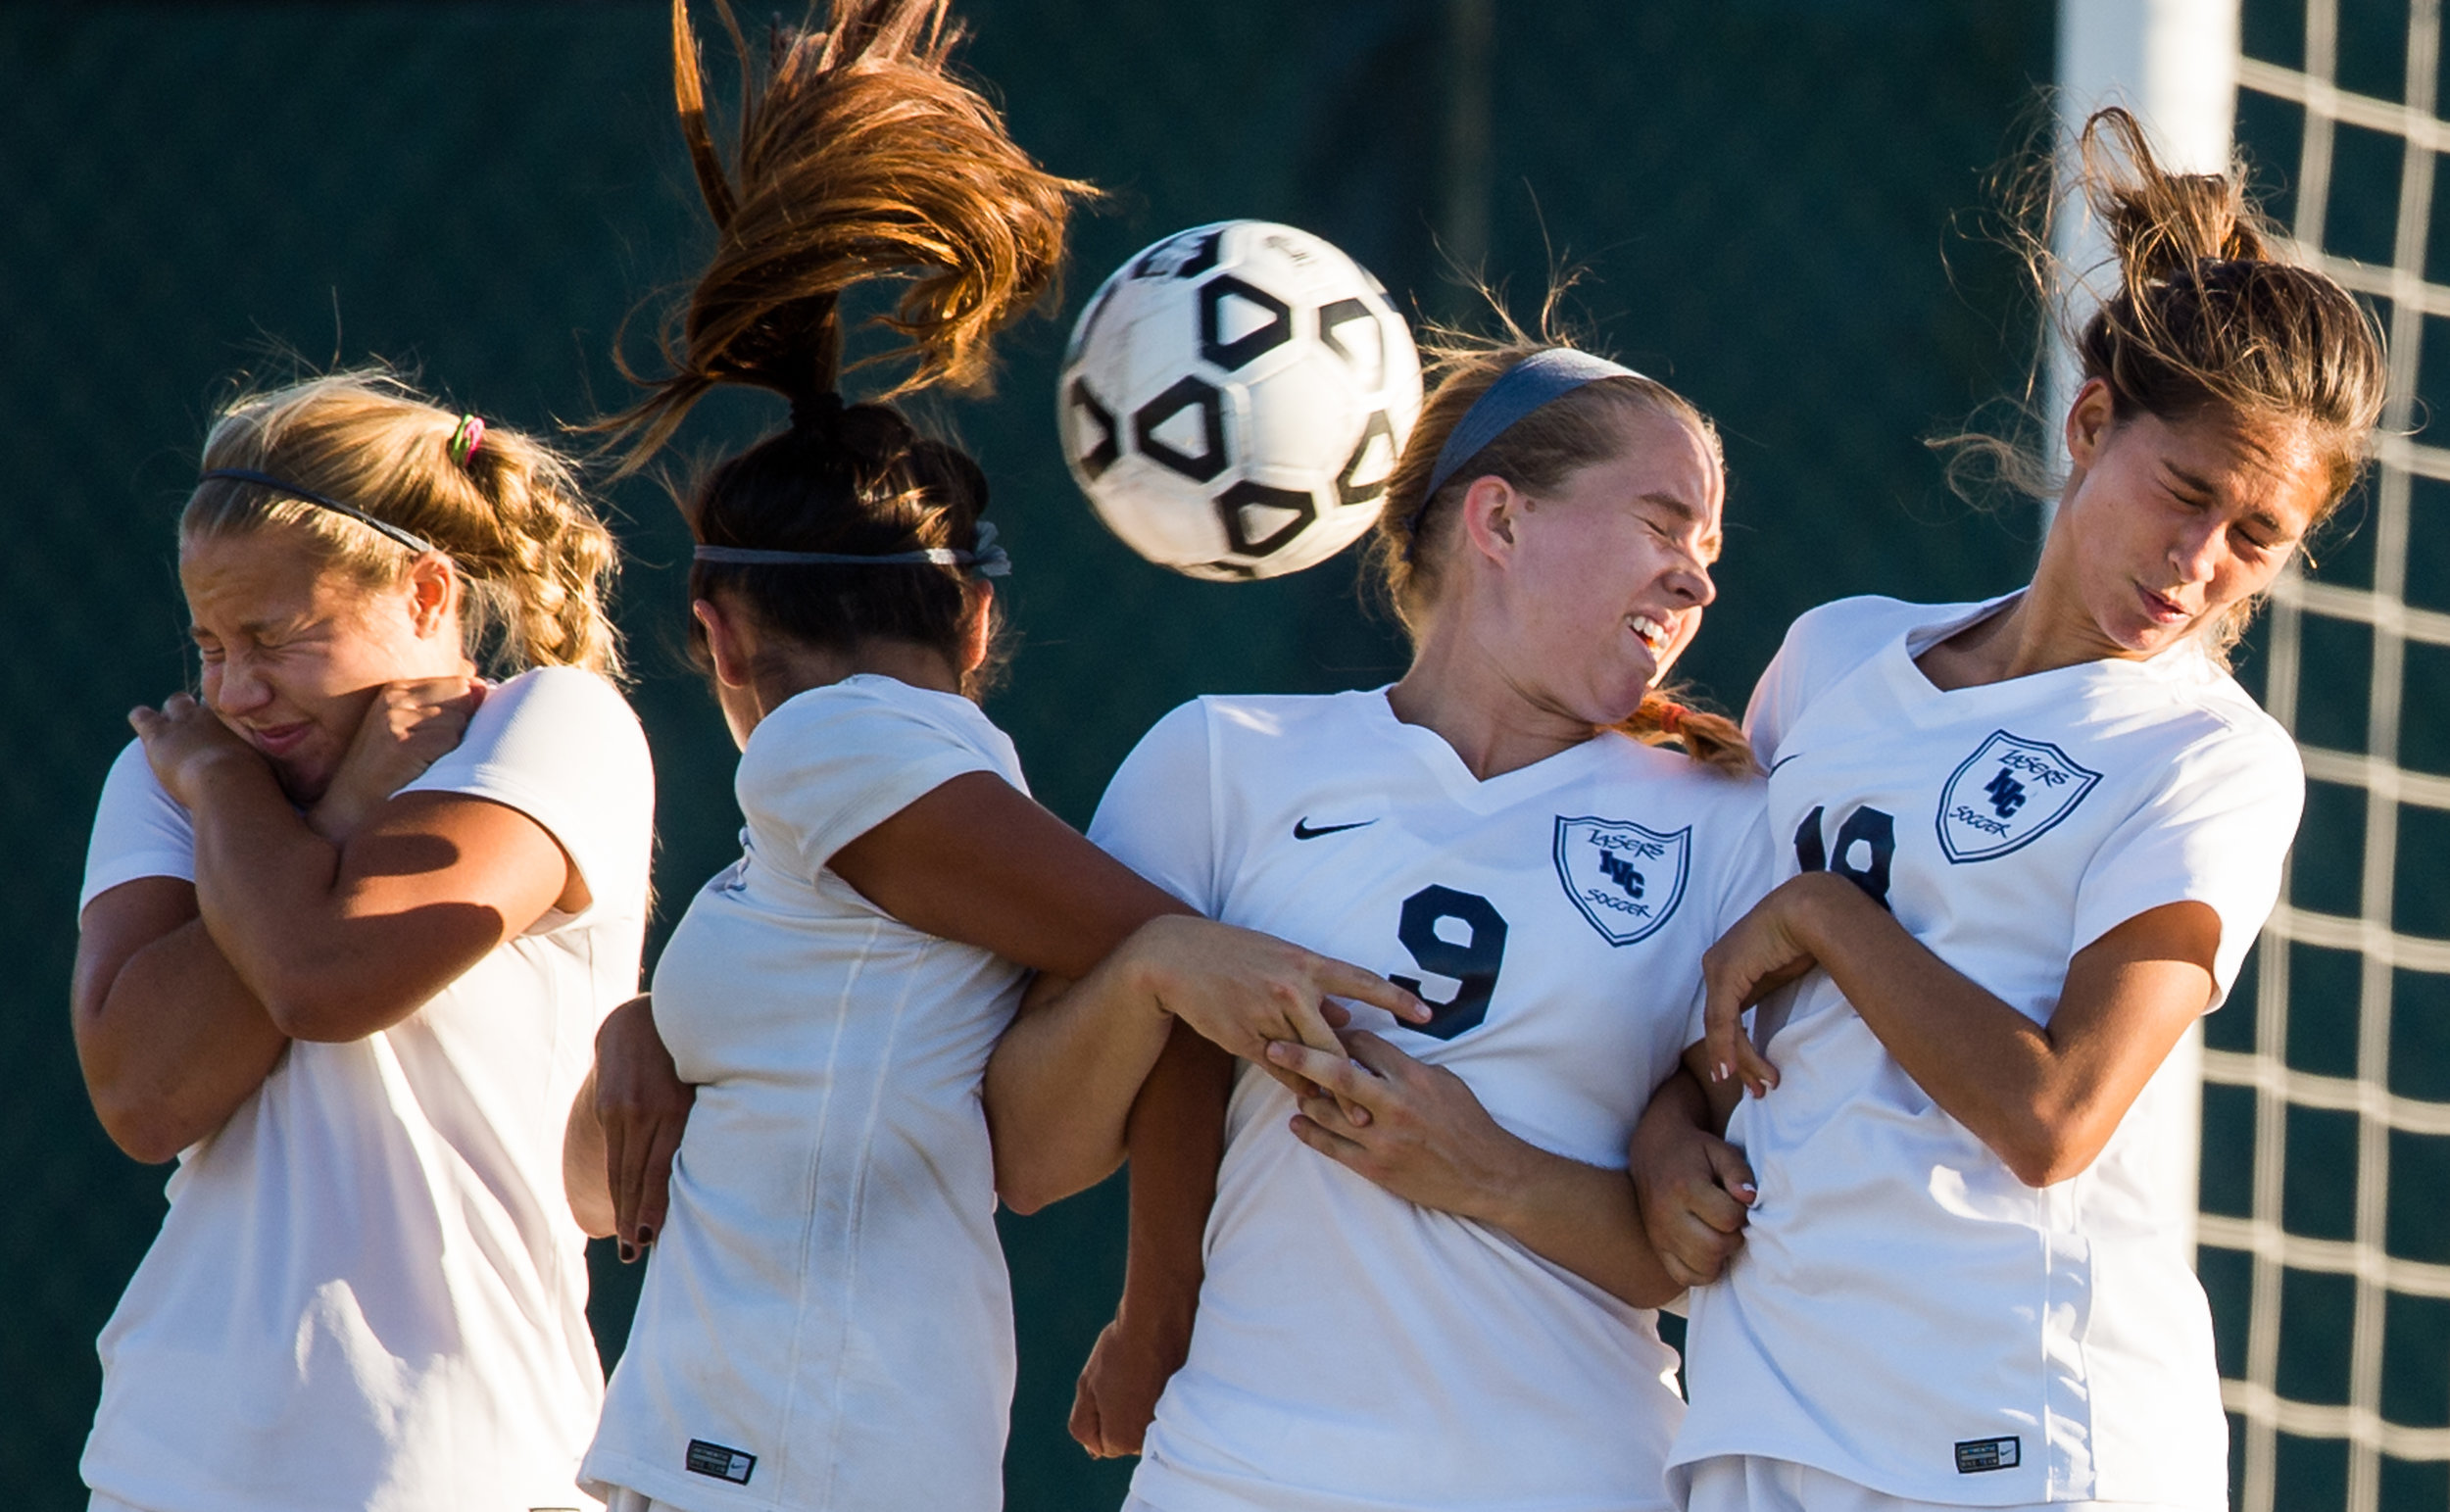 Irvine Valley's #17 Payton Purcell, #2 Johana Abarca, #9 Virginia Hickman and #18 Christina Anderson attempt to block a free kick at the Fullerton vs. Irvine Valley women's soccer game held at Fullerton College on Nov. 6, 2015 in Fullerton, California.